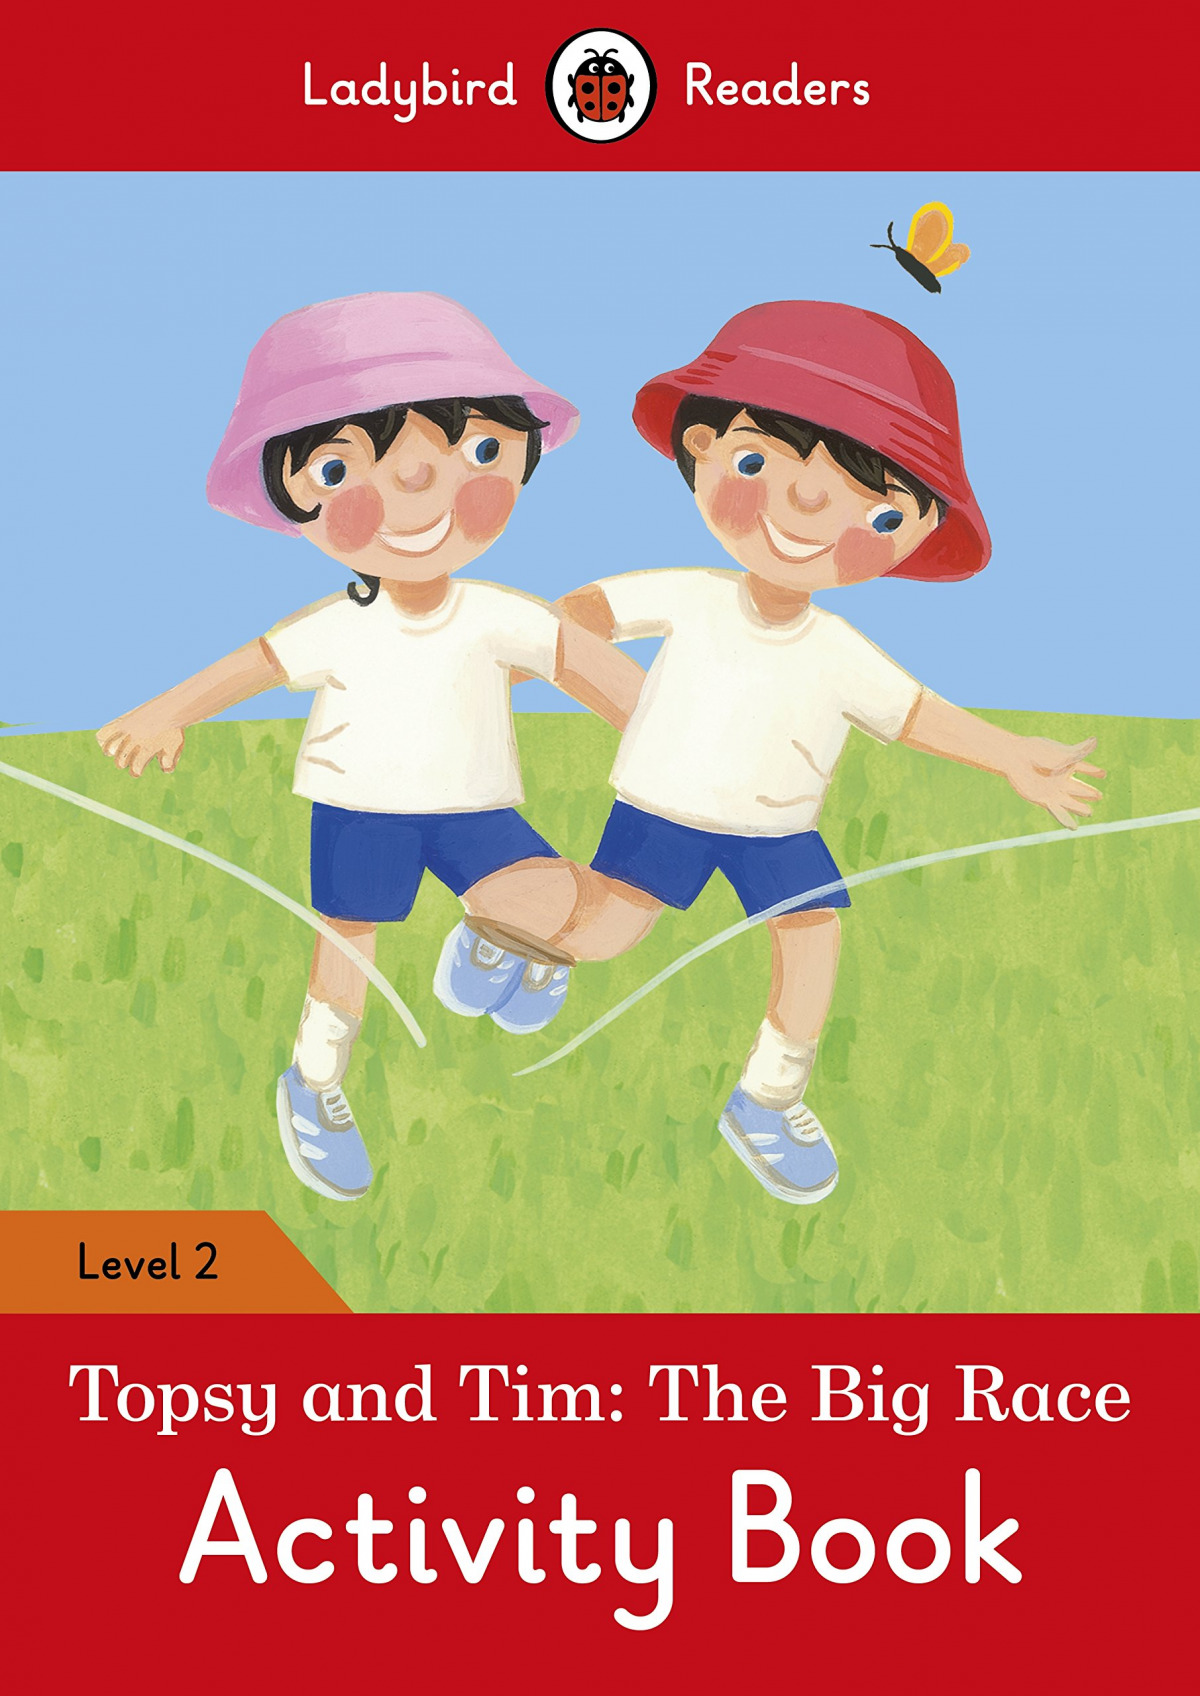 THE BIG RACE. TOPSY AND TIM. ACTIVITY BOOK